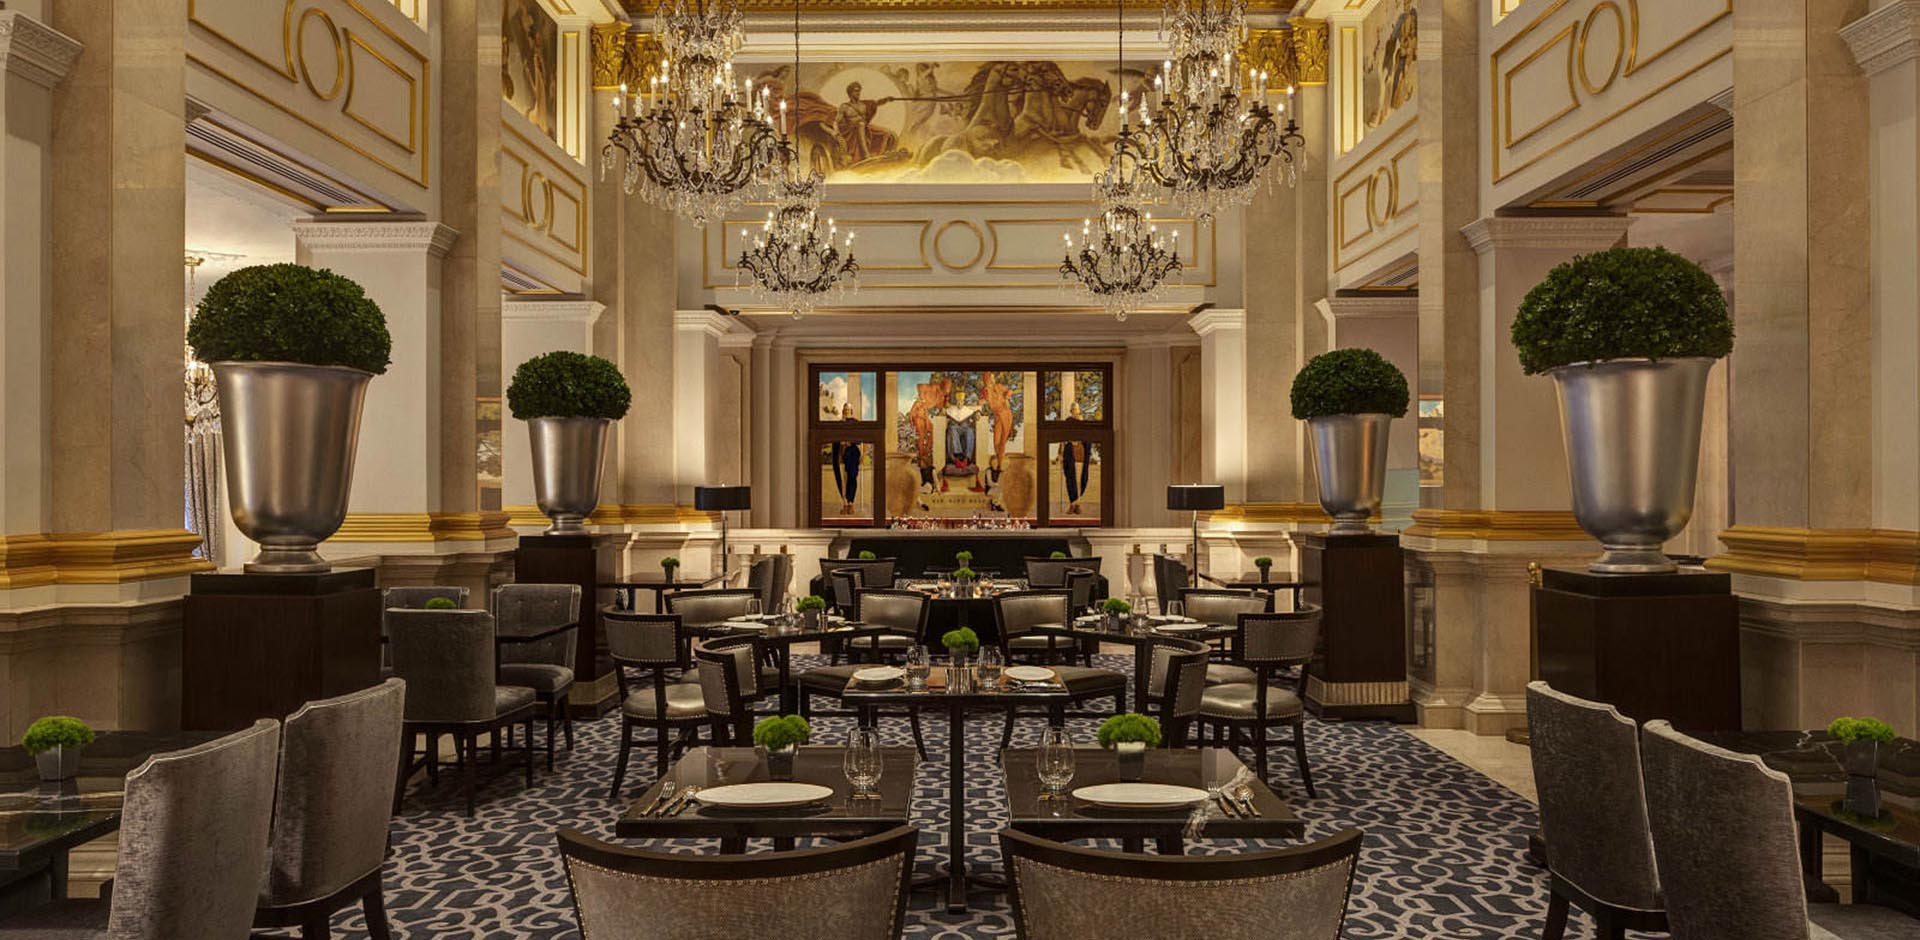 St Regis, New York - King Cole Bar & Salon